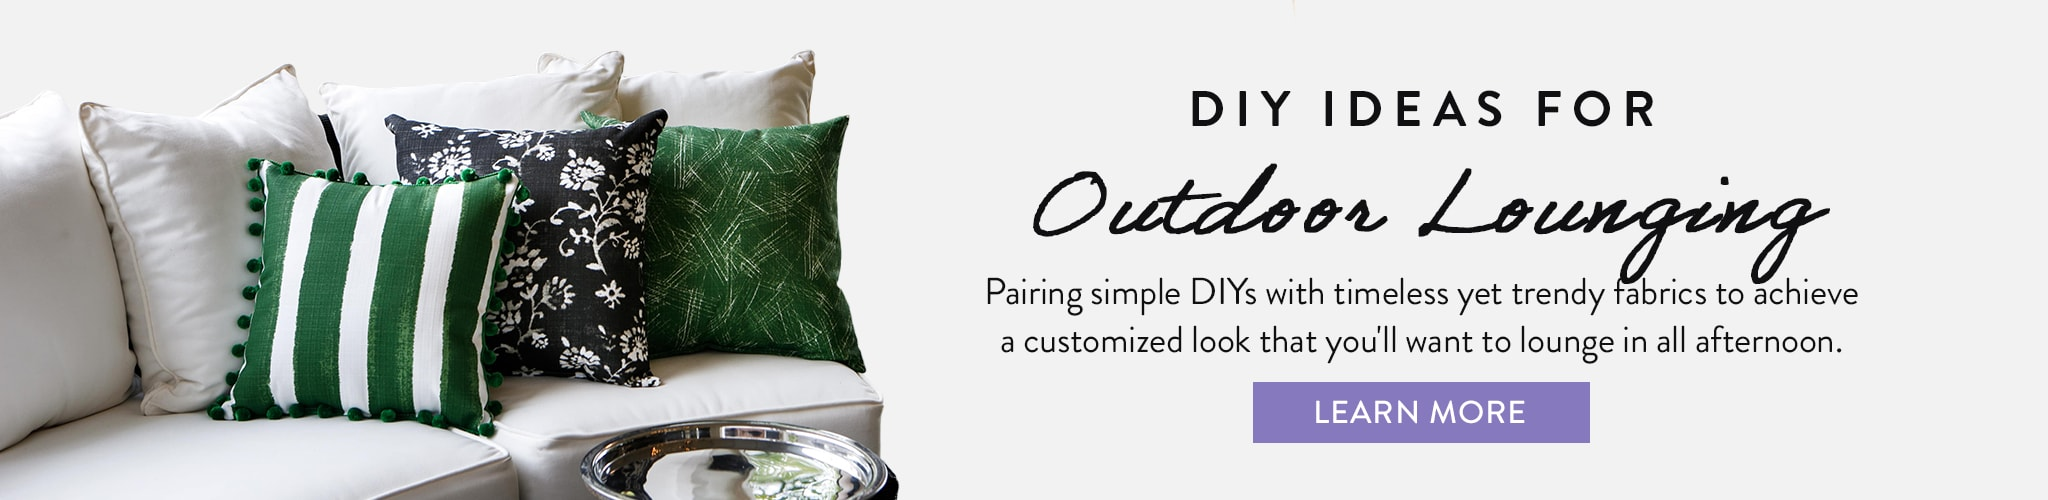 DIYs For Outdoor Lounging